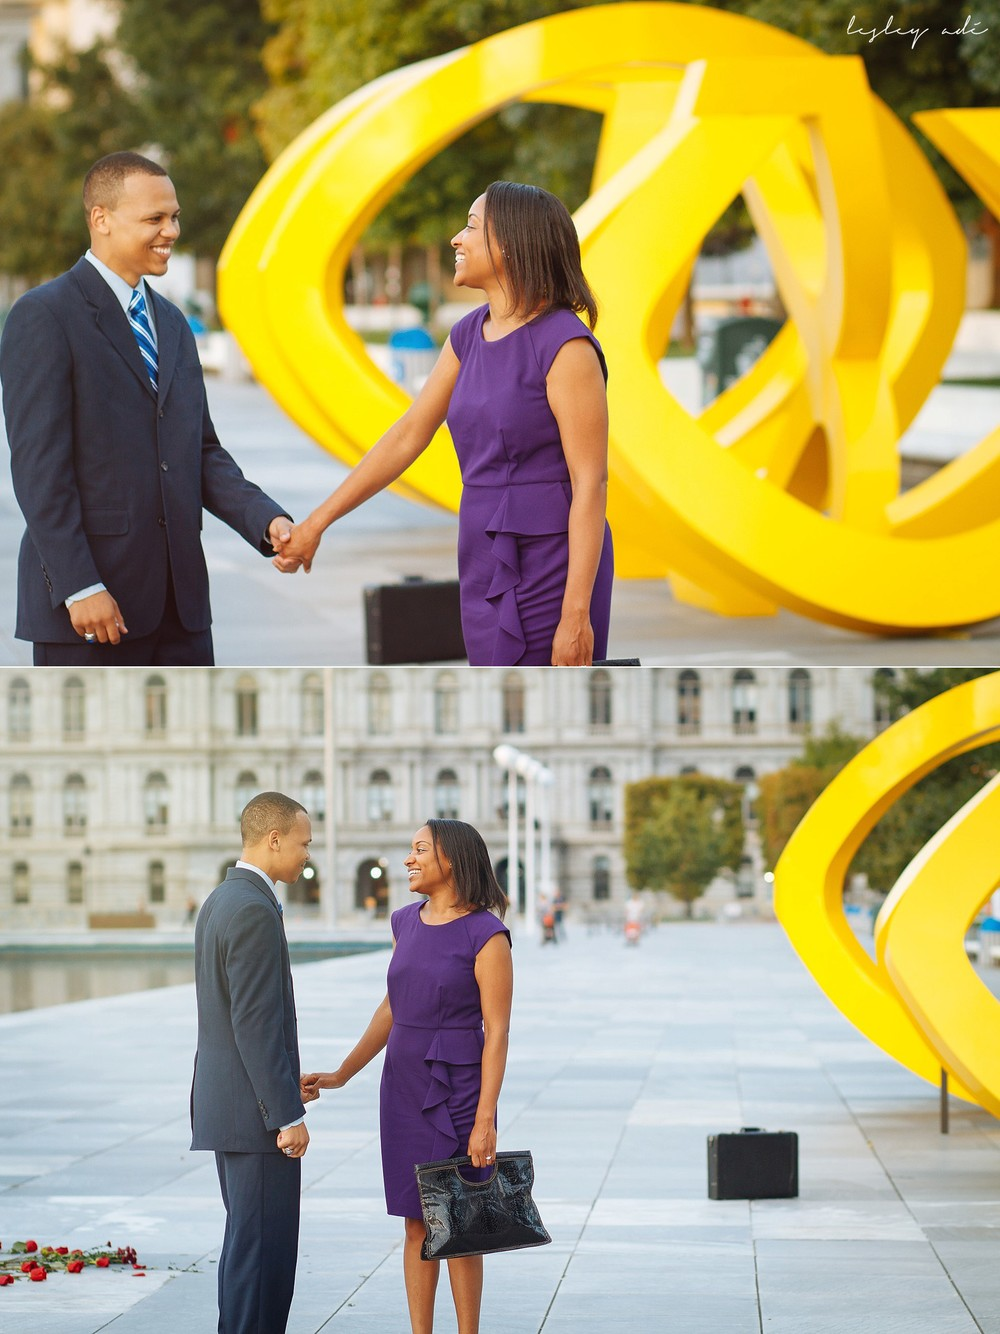 albany-proposal-engagement-new york-photographer-30.jpg